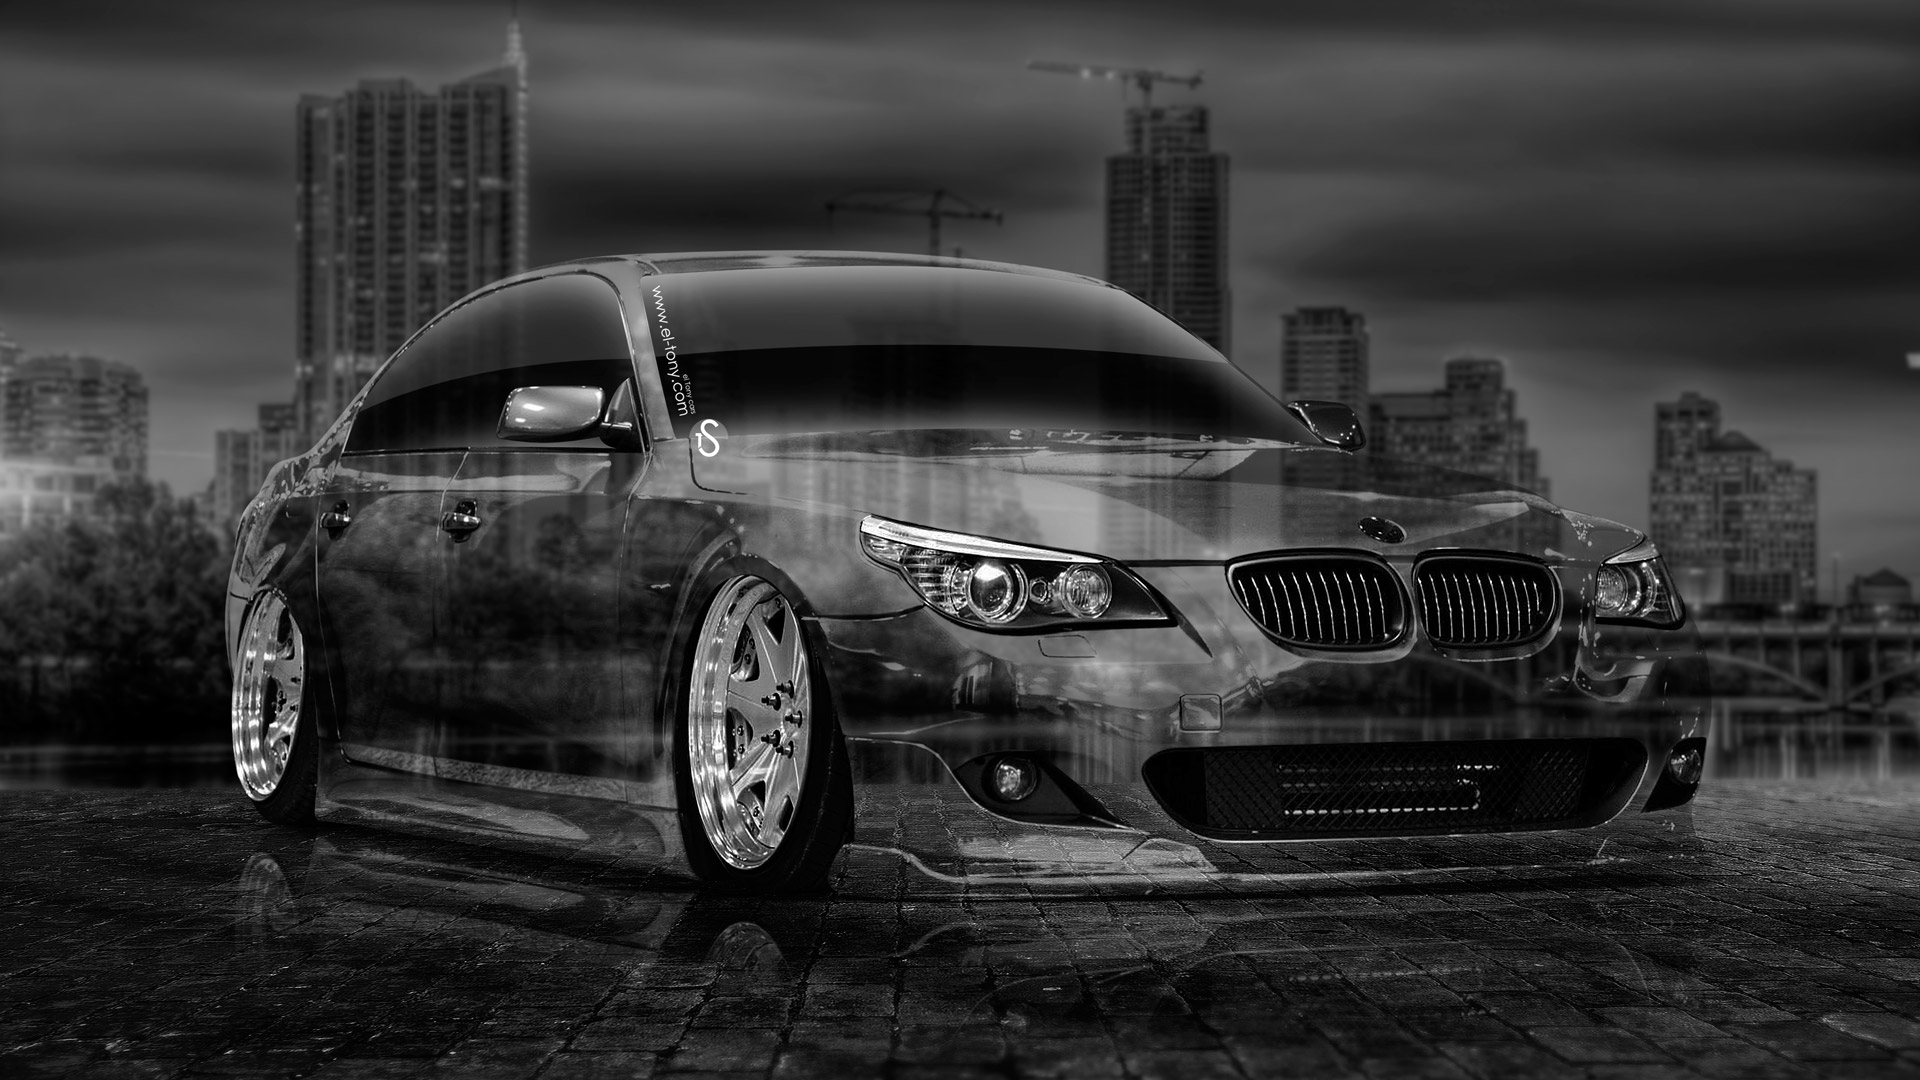 Bon BMW M5 E60 Tuning Crystal City Car 2014